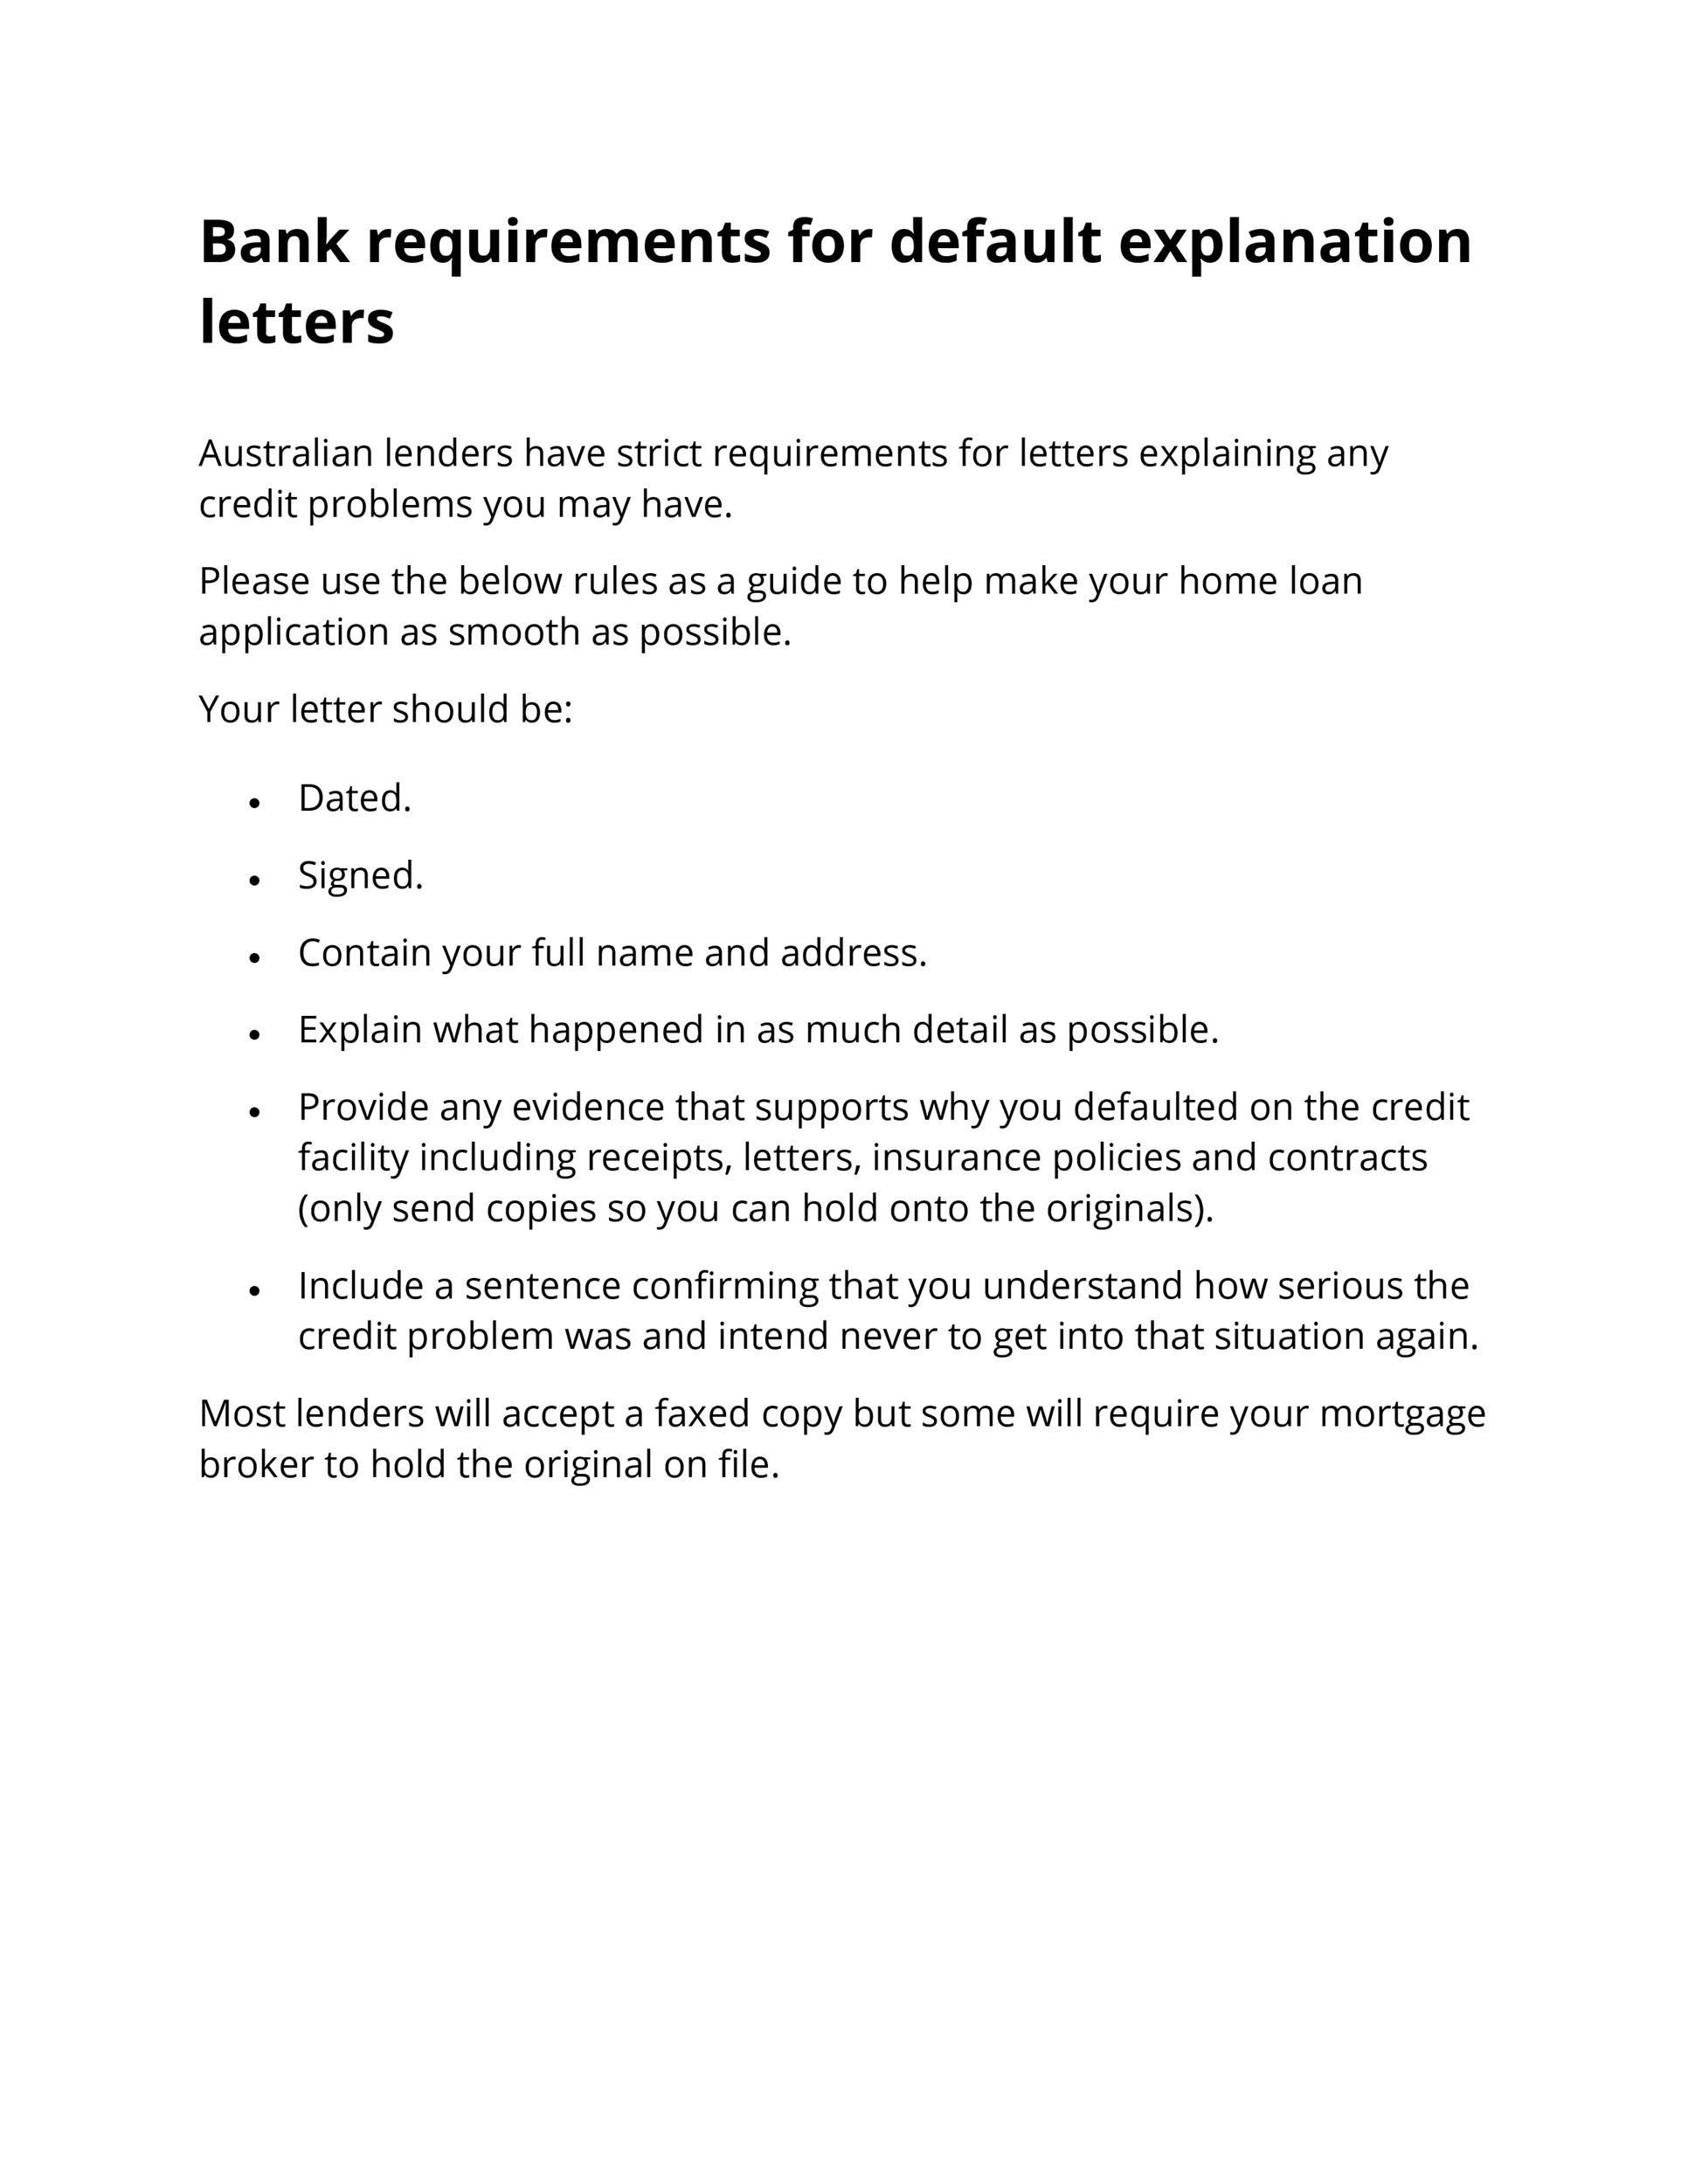 48 Letters Of Explanation Templates (Mortgage, Derogatory